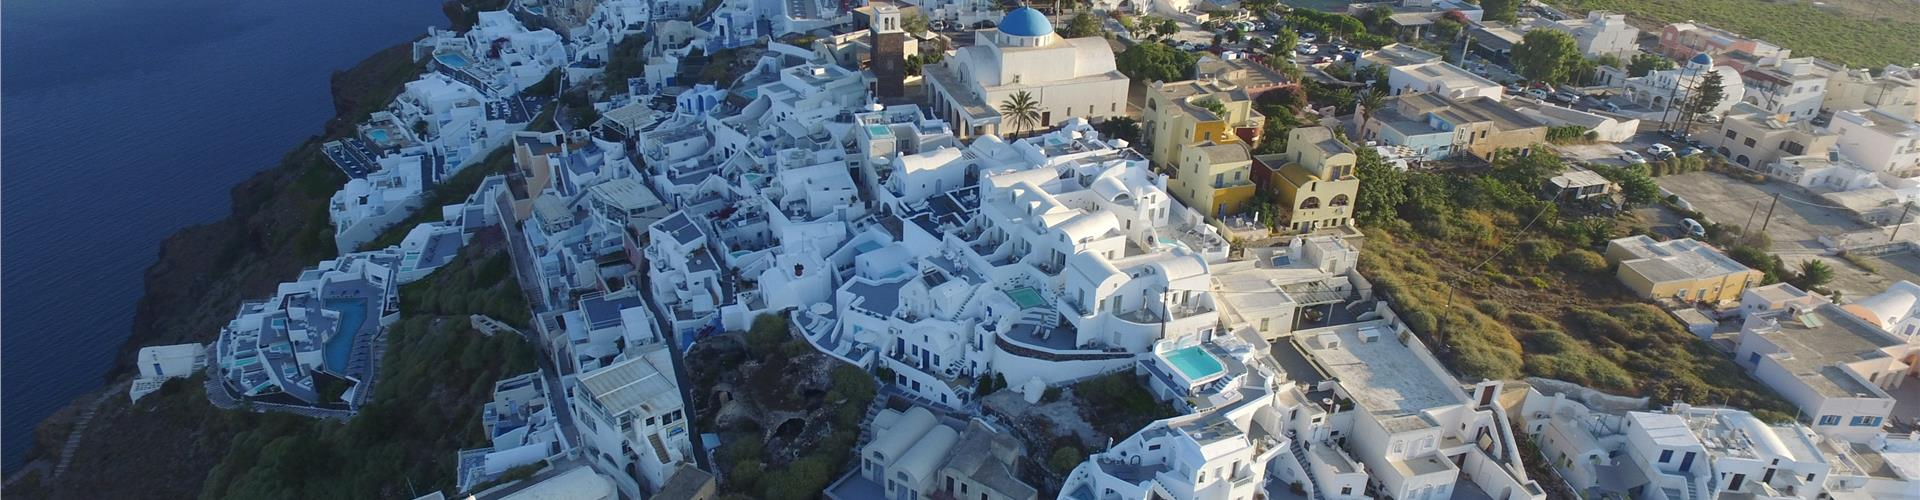 Santorini hotels on the rim of the caldera